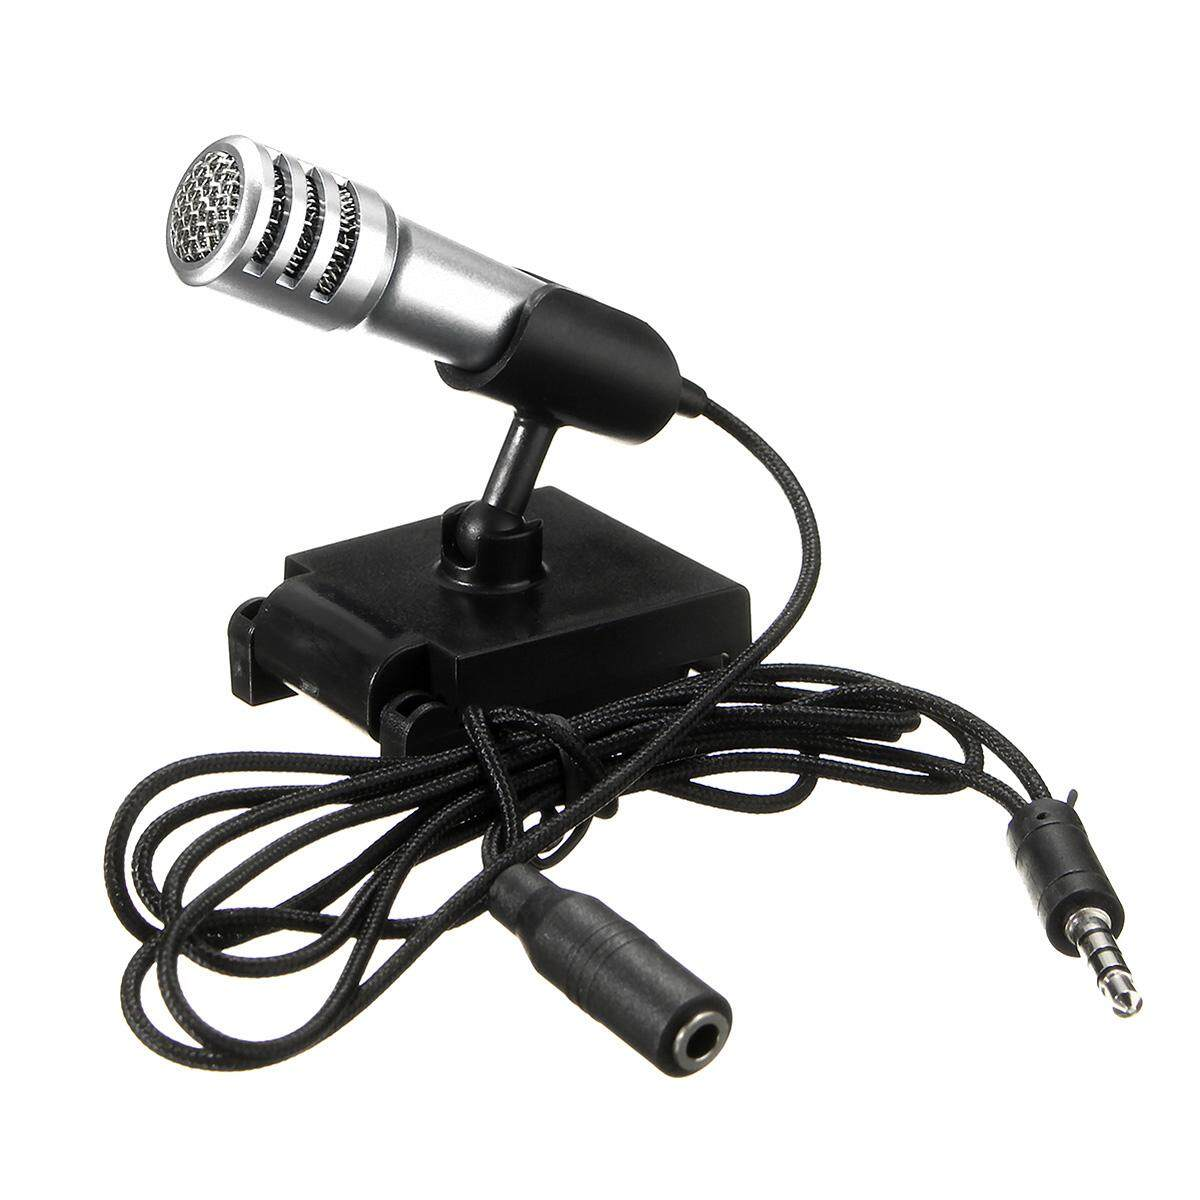 35mm Mini Singing Karaoke Microphone Mic HP iphoneSamsungSOnyAndroidZenfonedll PC Laptop Reverberation. Source · Untuk Ponsel Mini Handheld Ujaran Studio ...